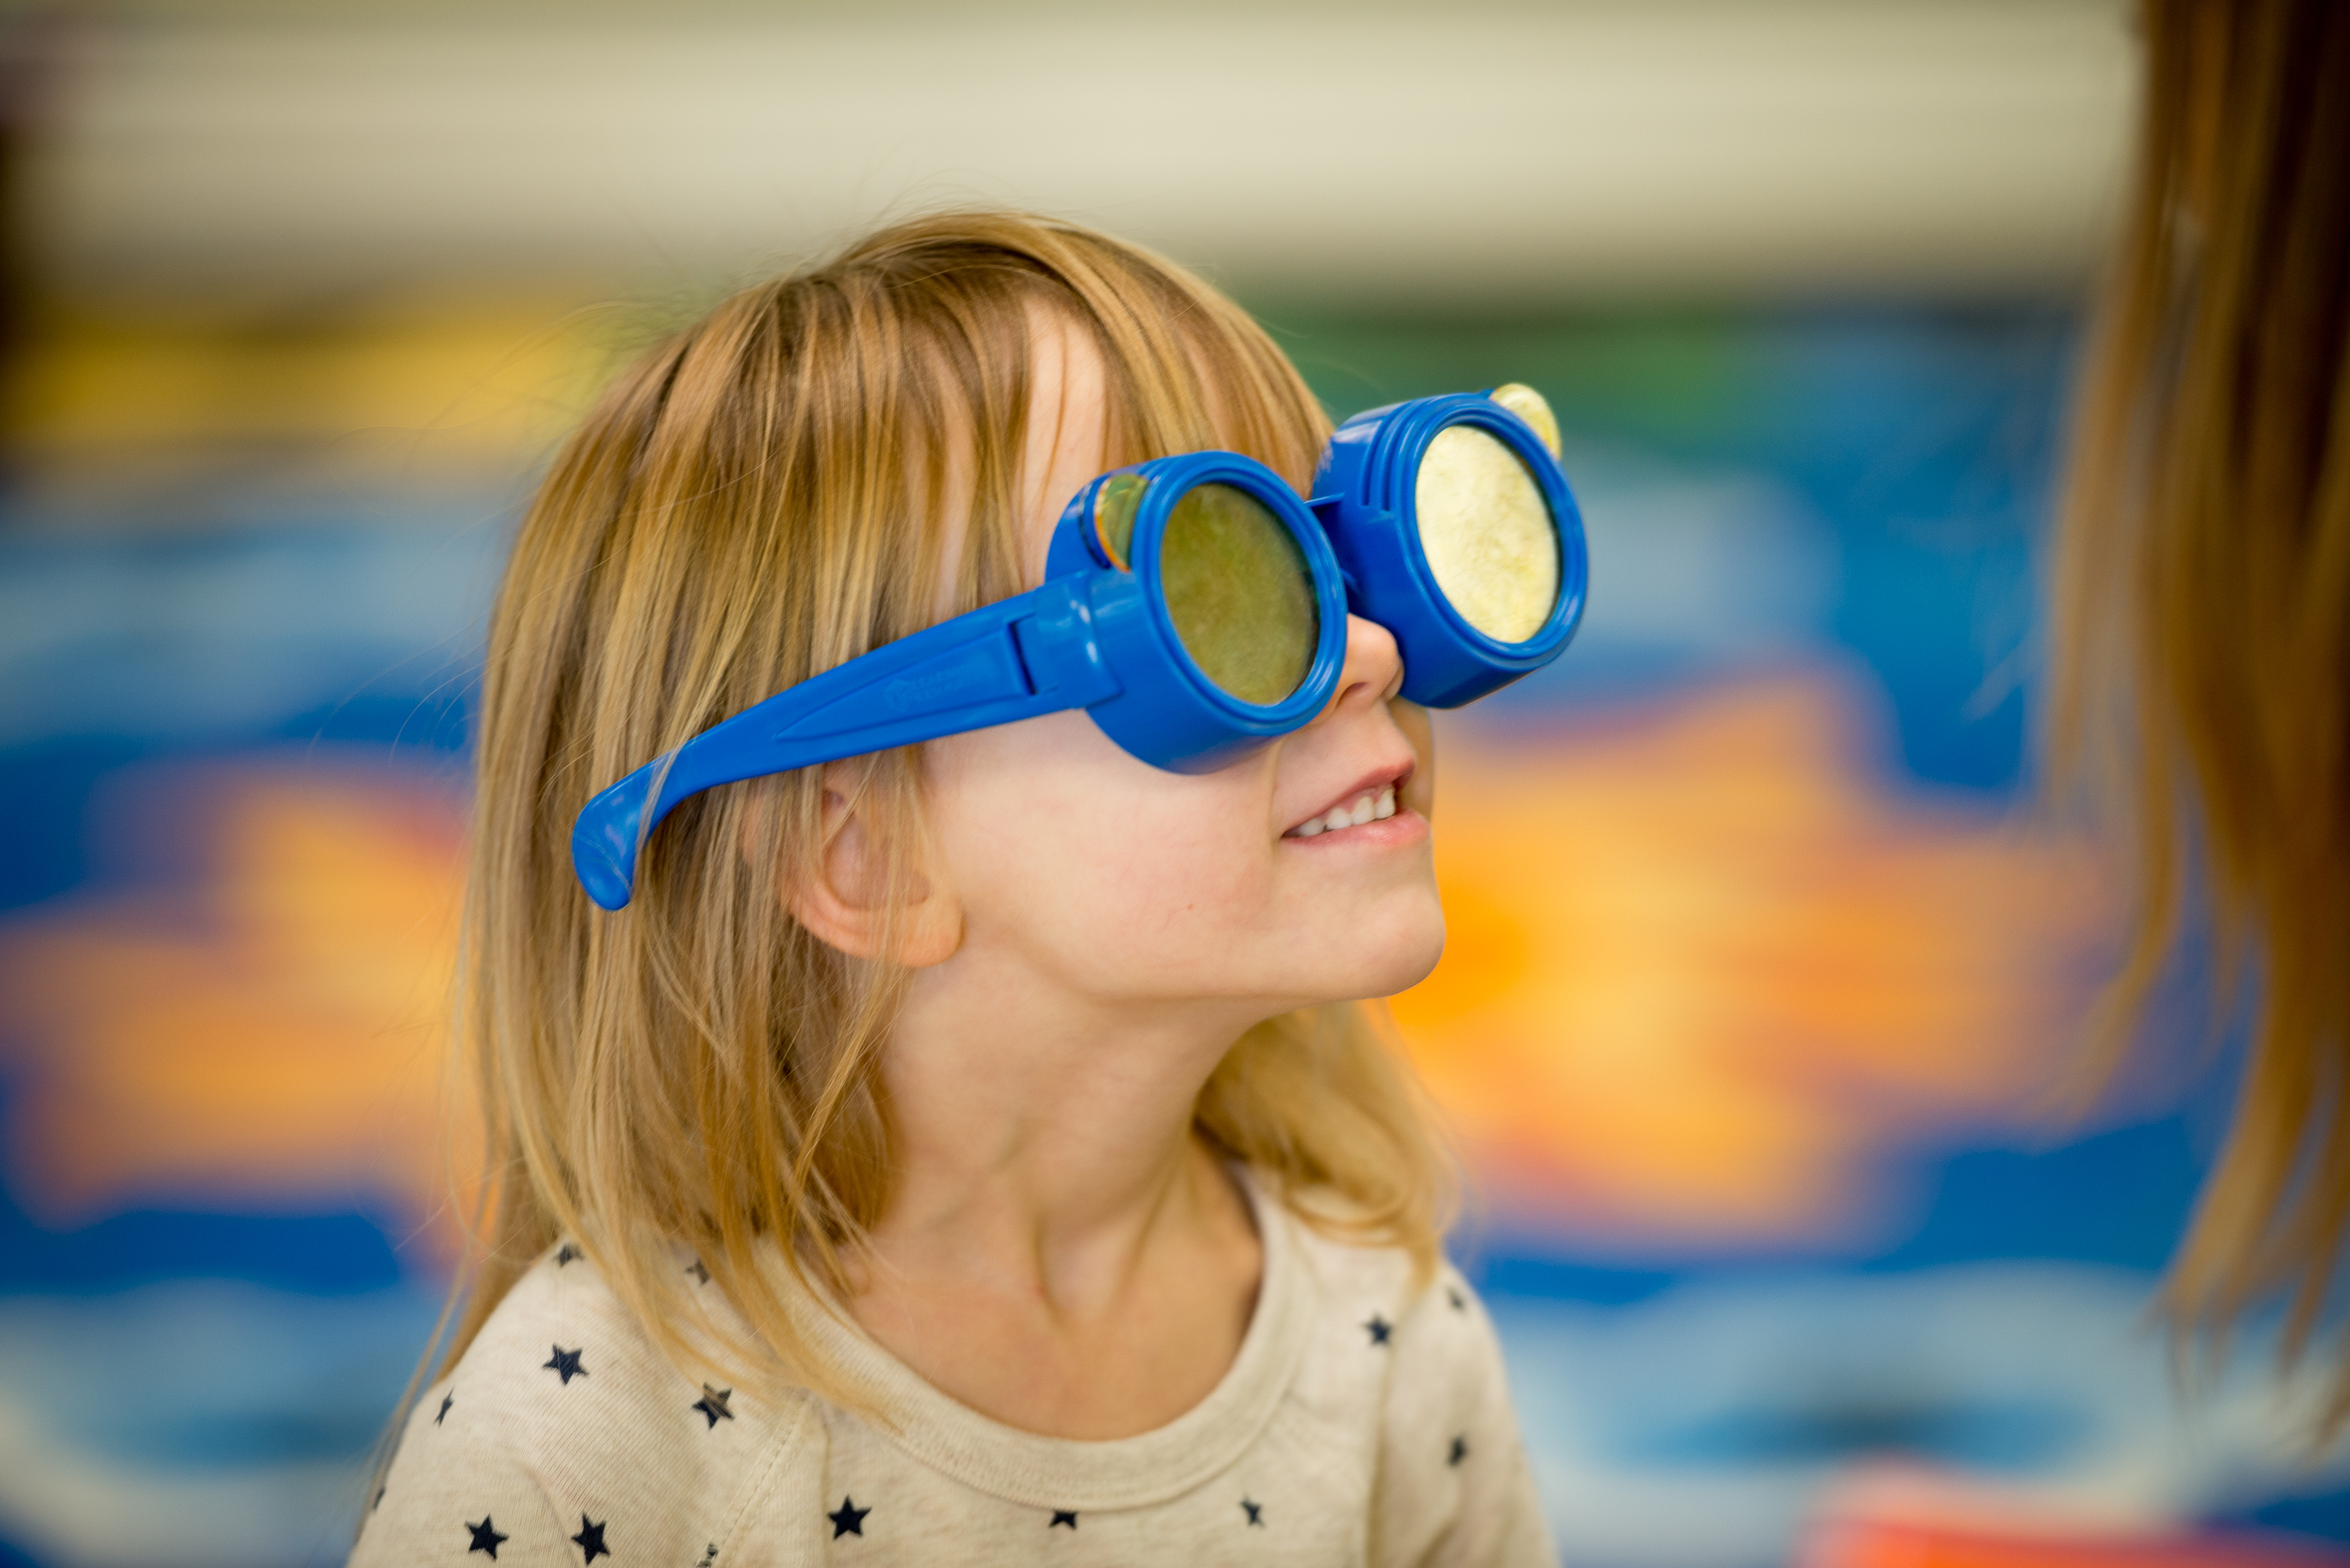 Our vision - young child gazing upwards wearing goggles